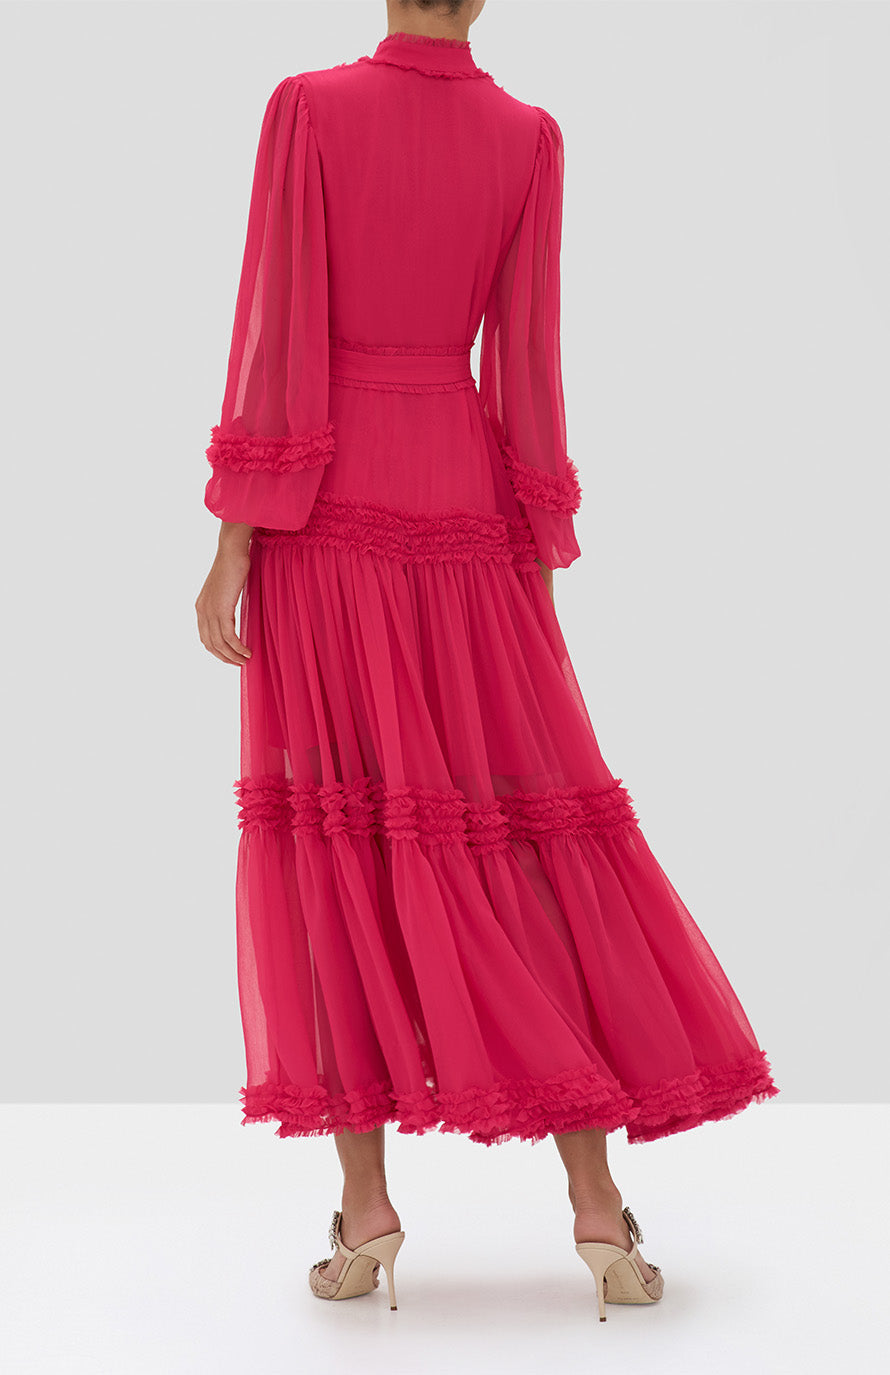 Alexis Patrizia Dress in Azalea Pink from the Holiday 2019 Ready To Wear Collection - Rear View